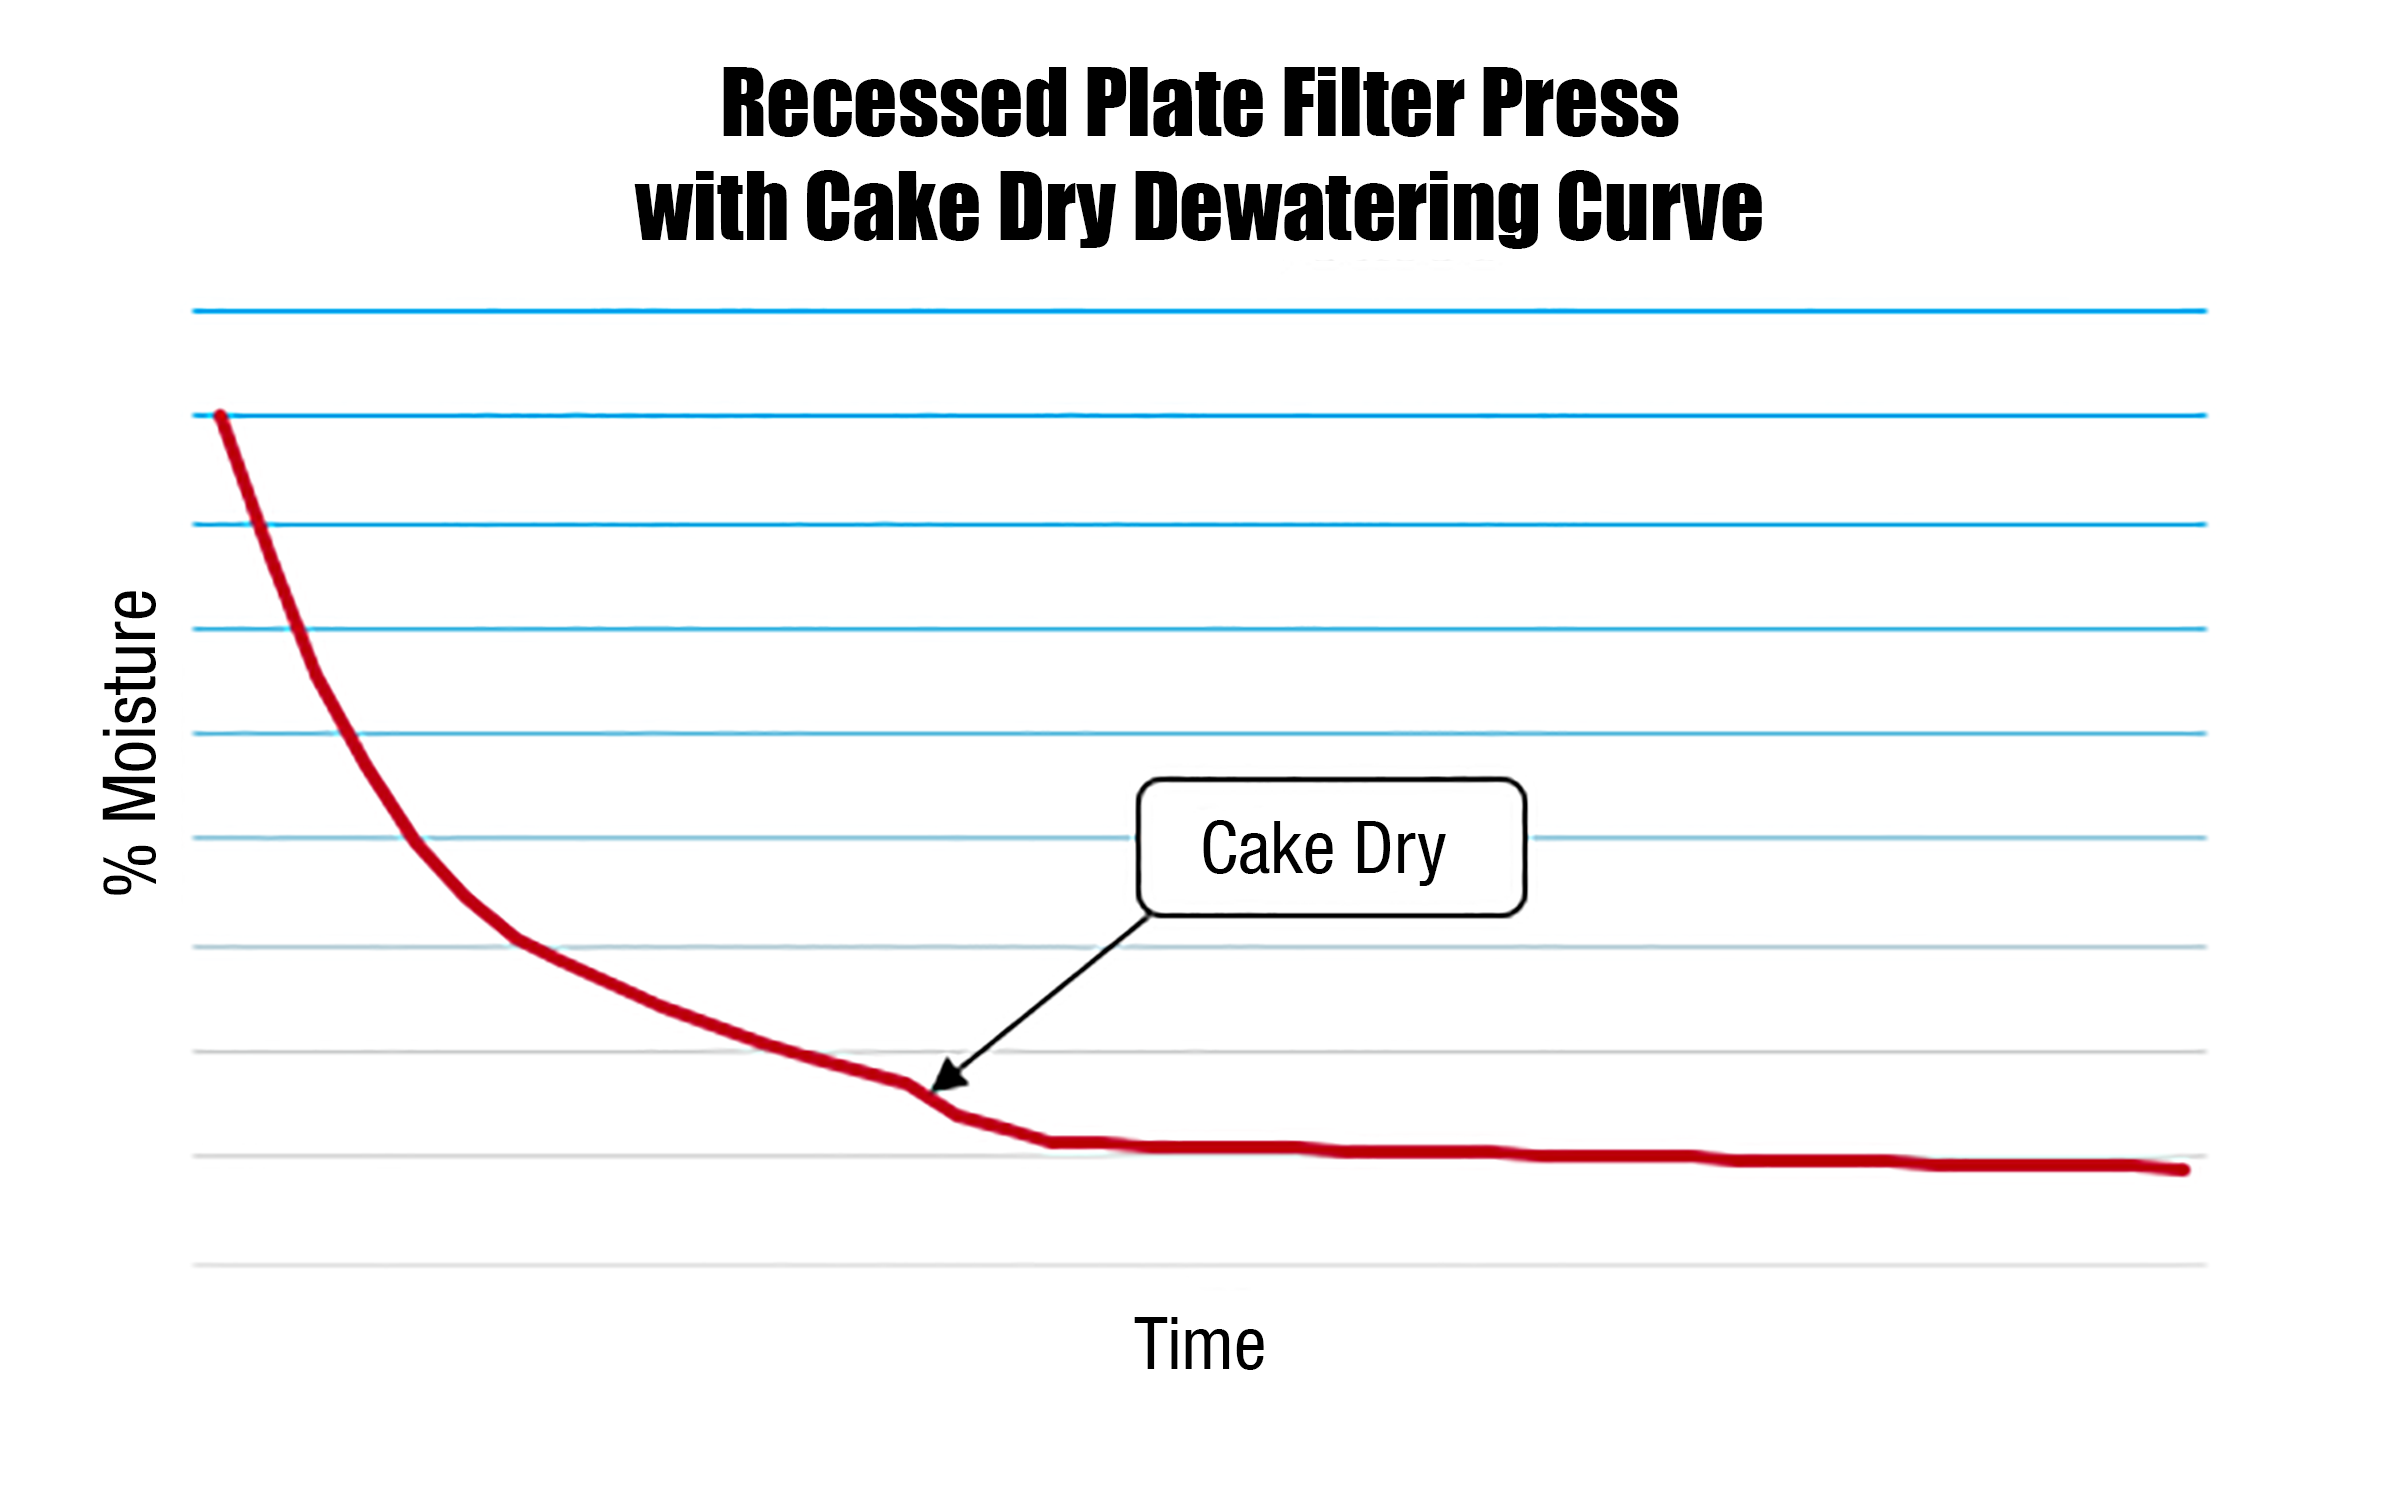 Filter-Press-Dewatering-Curve-Cake-Dry.PNG?mtime=20191025143209#asset:44944